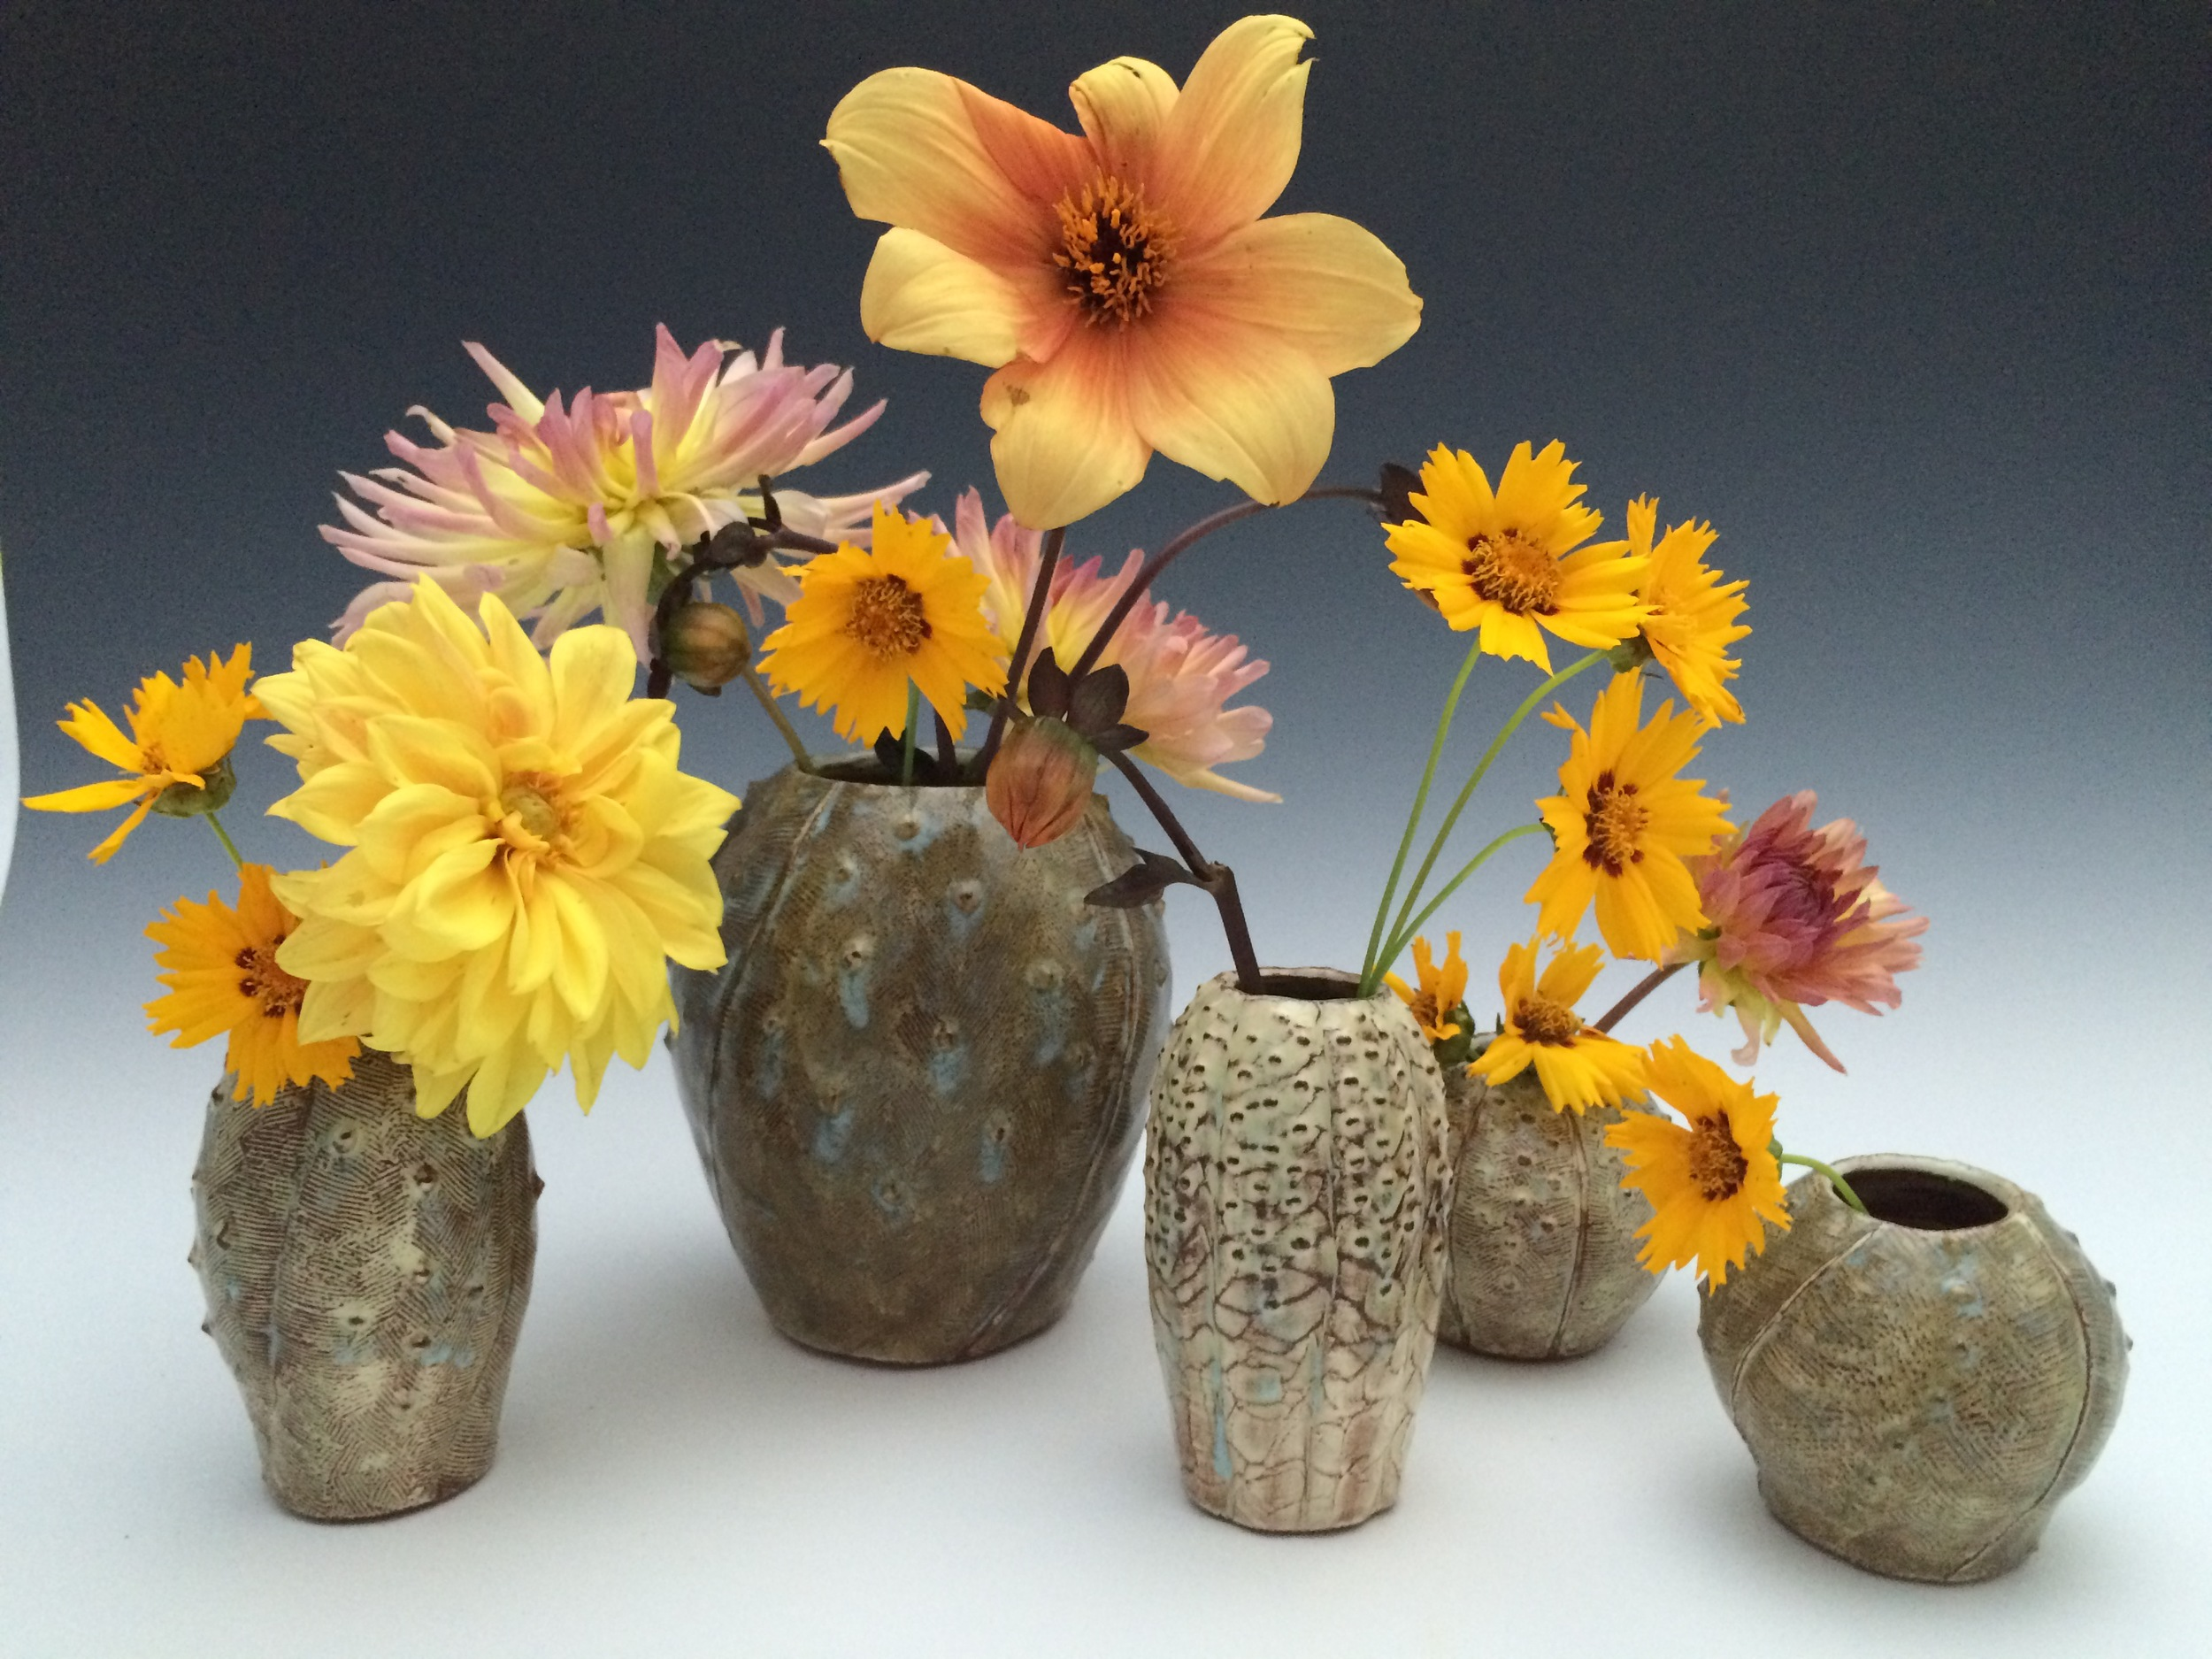 Here are some of my cactus vases looking good with some summer flowers.